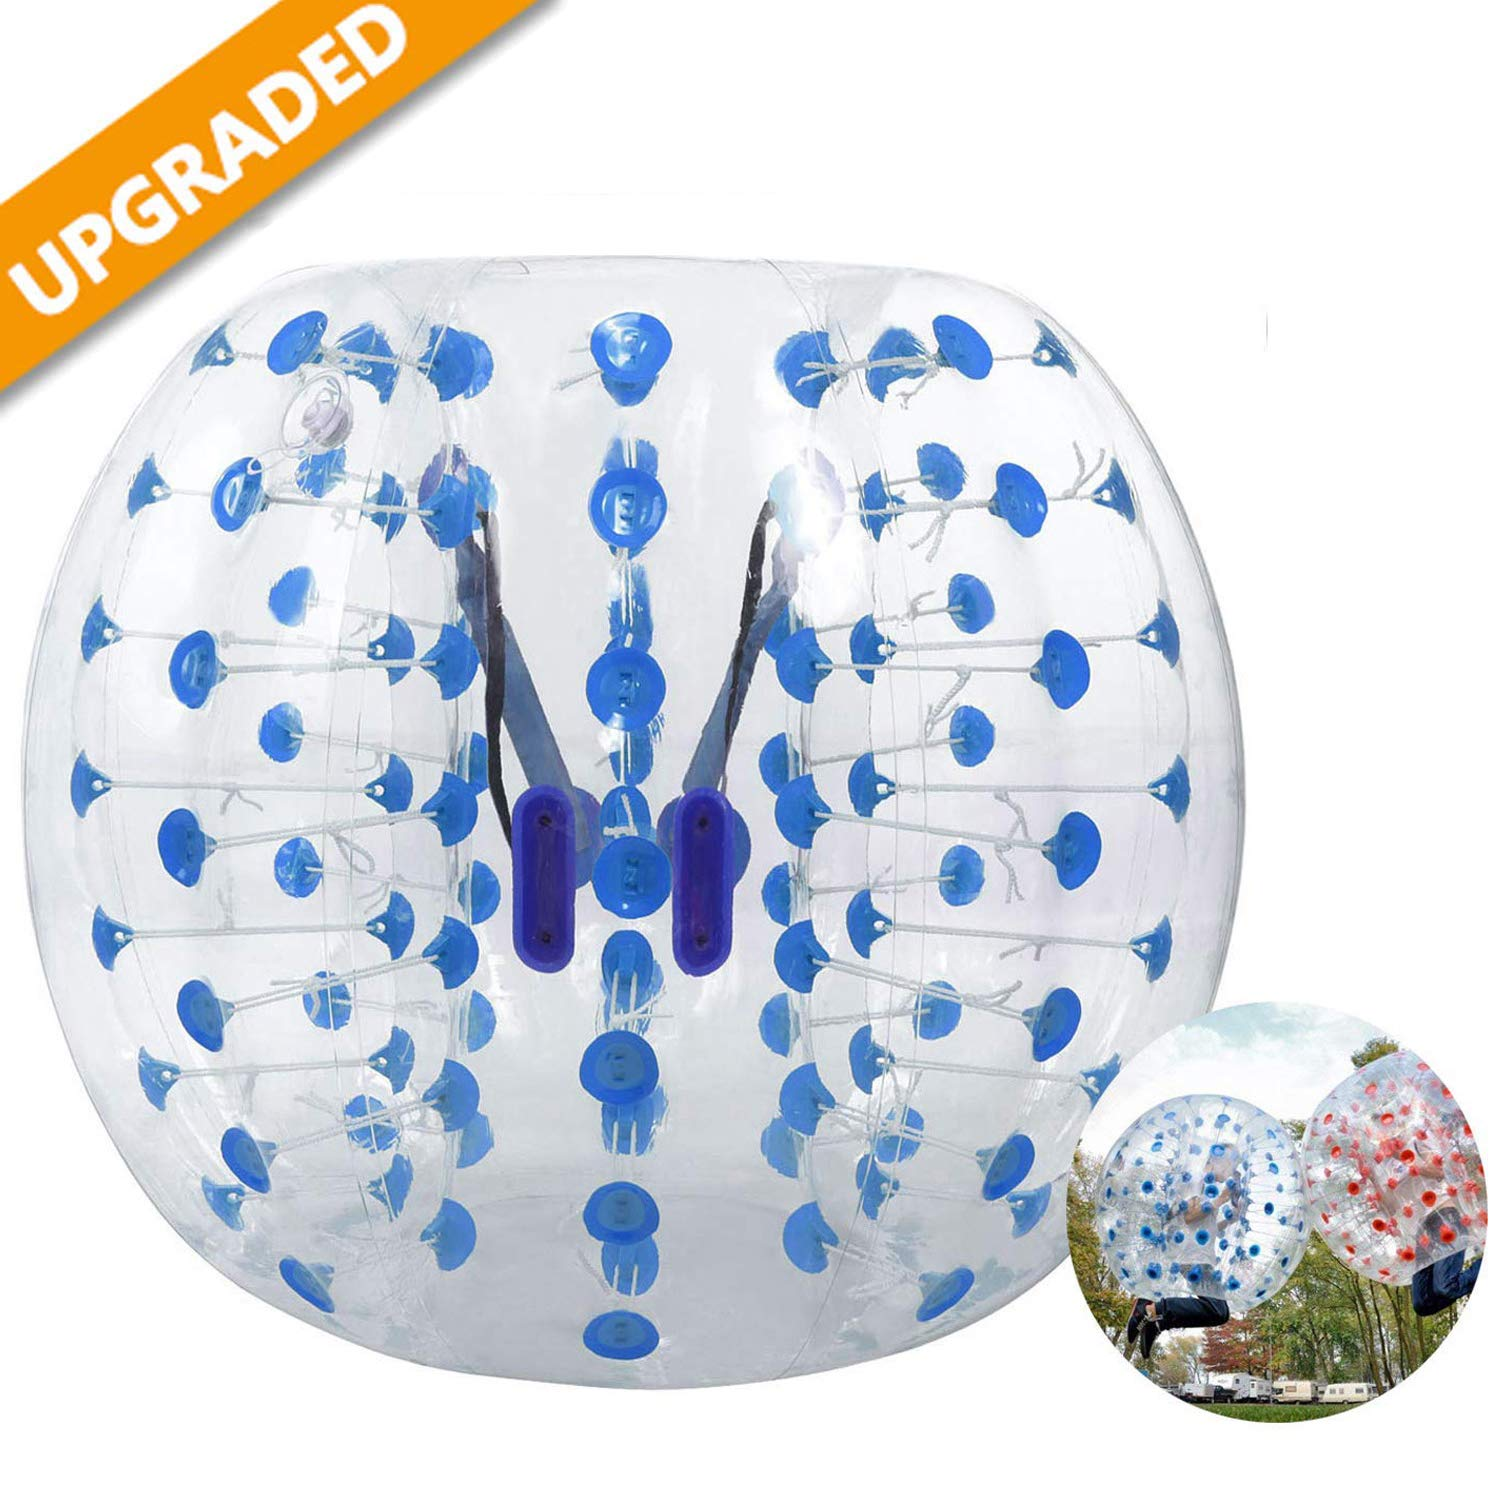 Hurbo Inflatable Bumper Ball Bubble Soccer Ball Giant Human Hamster Ball for Adults and Kids (Blue Dot) by Hurbo